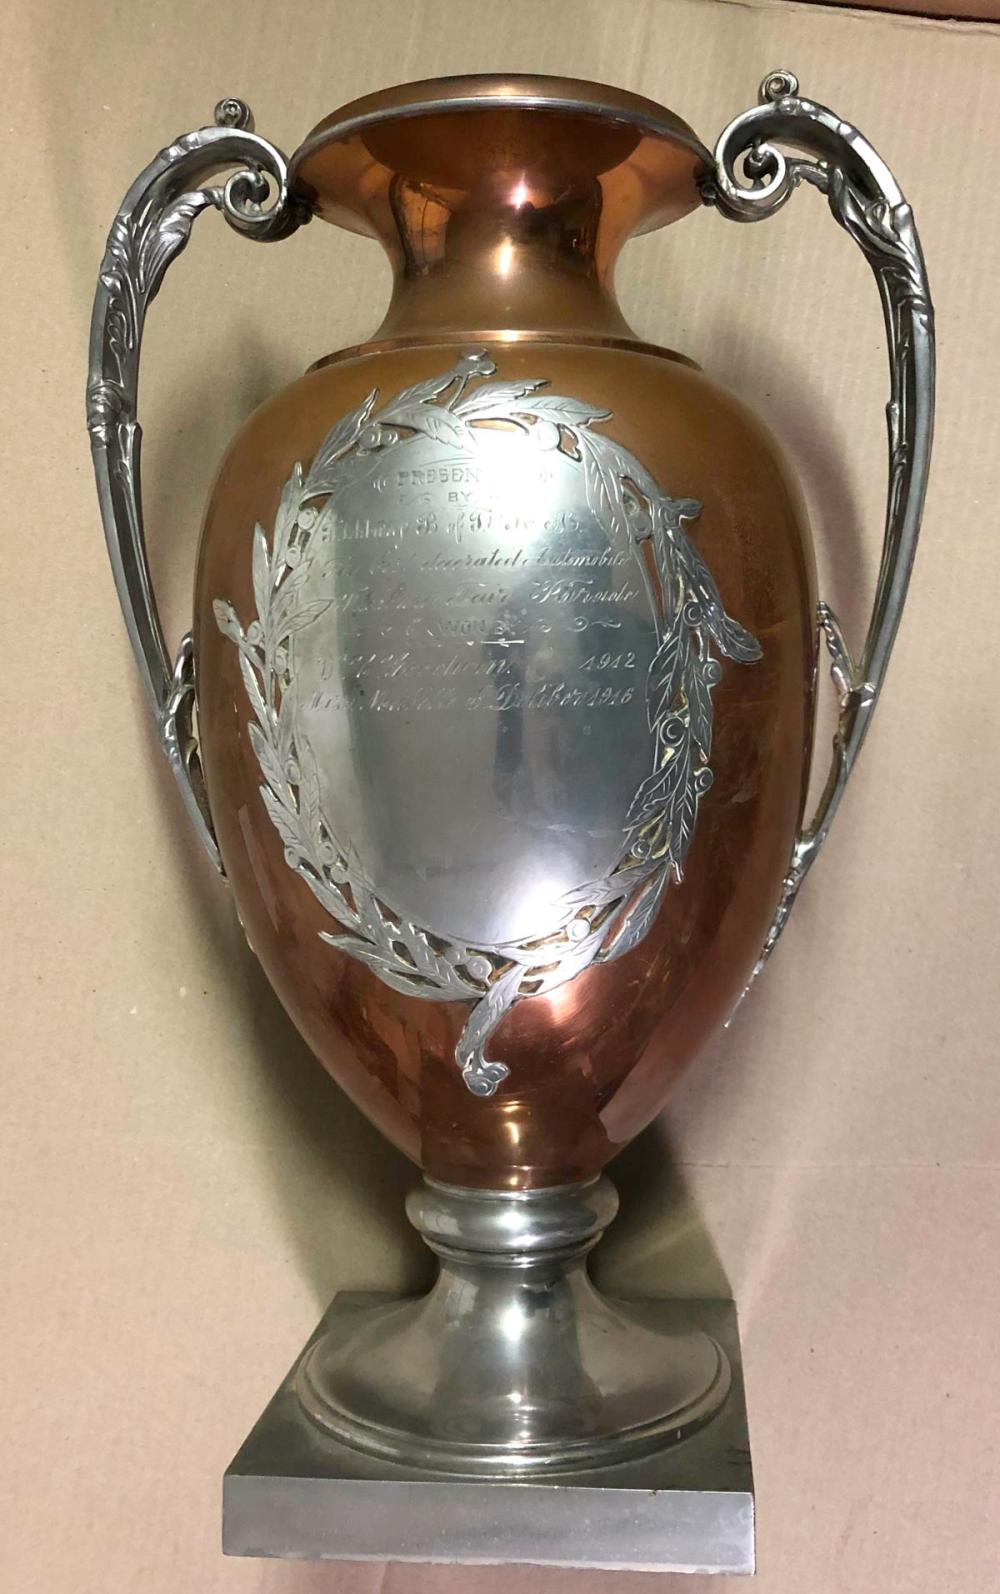 Fitchburg MA Decorated Auto trophy, 1912, 1916